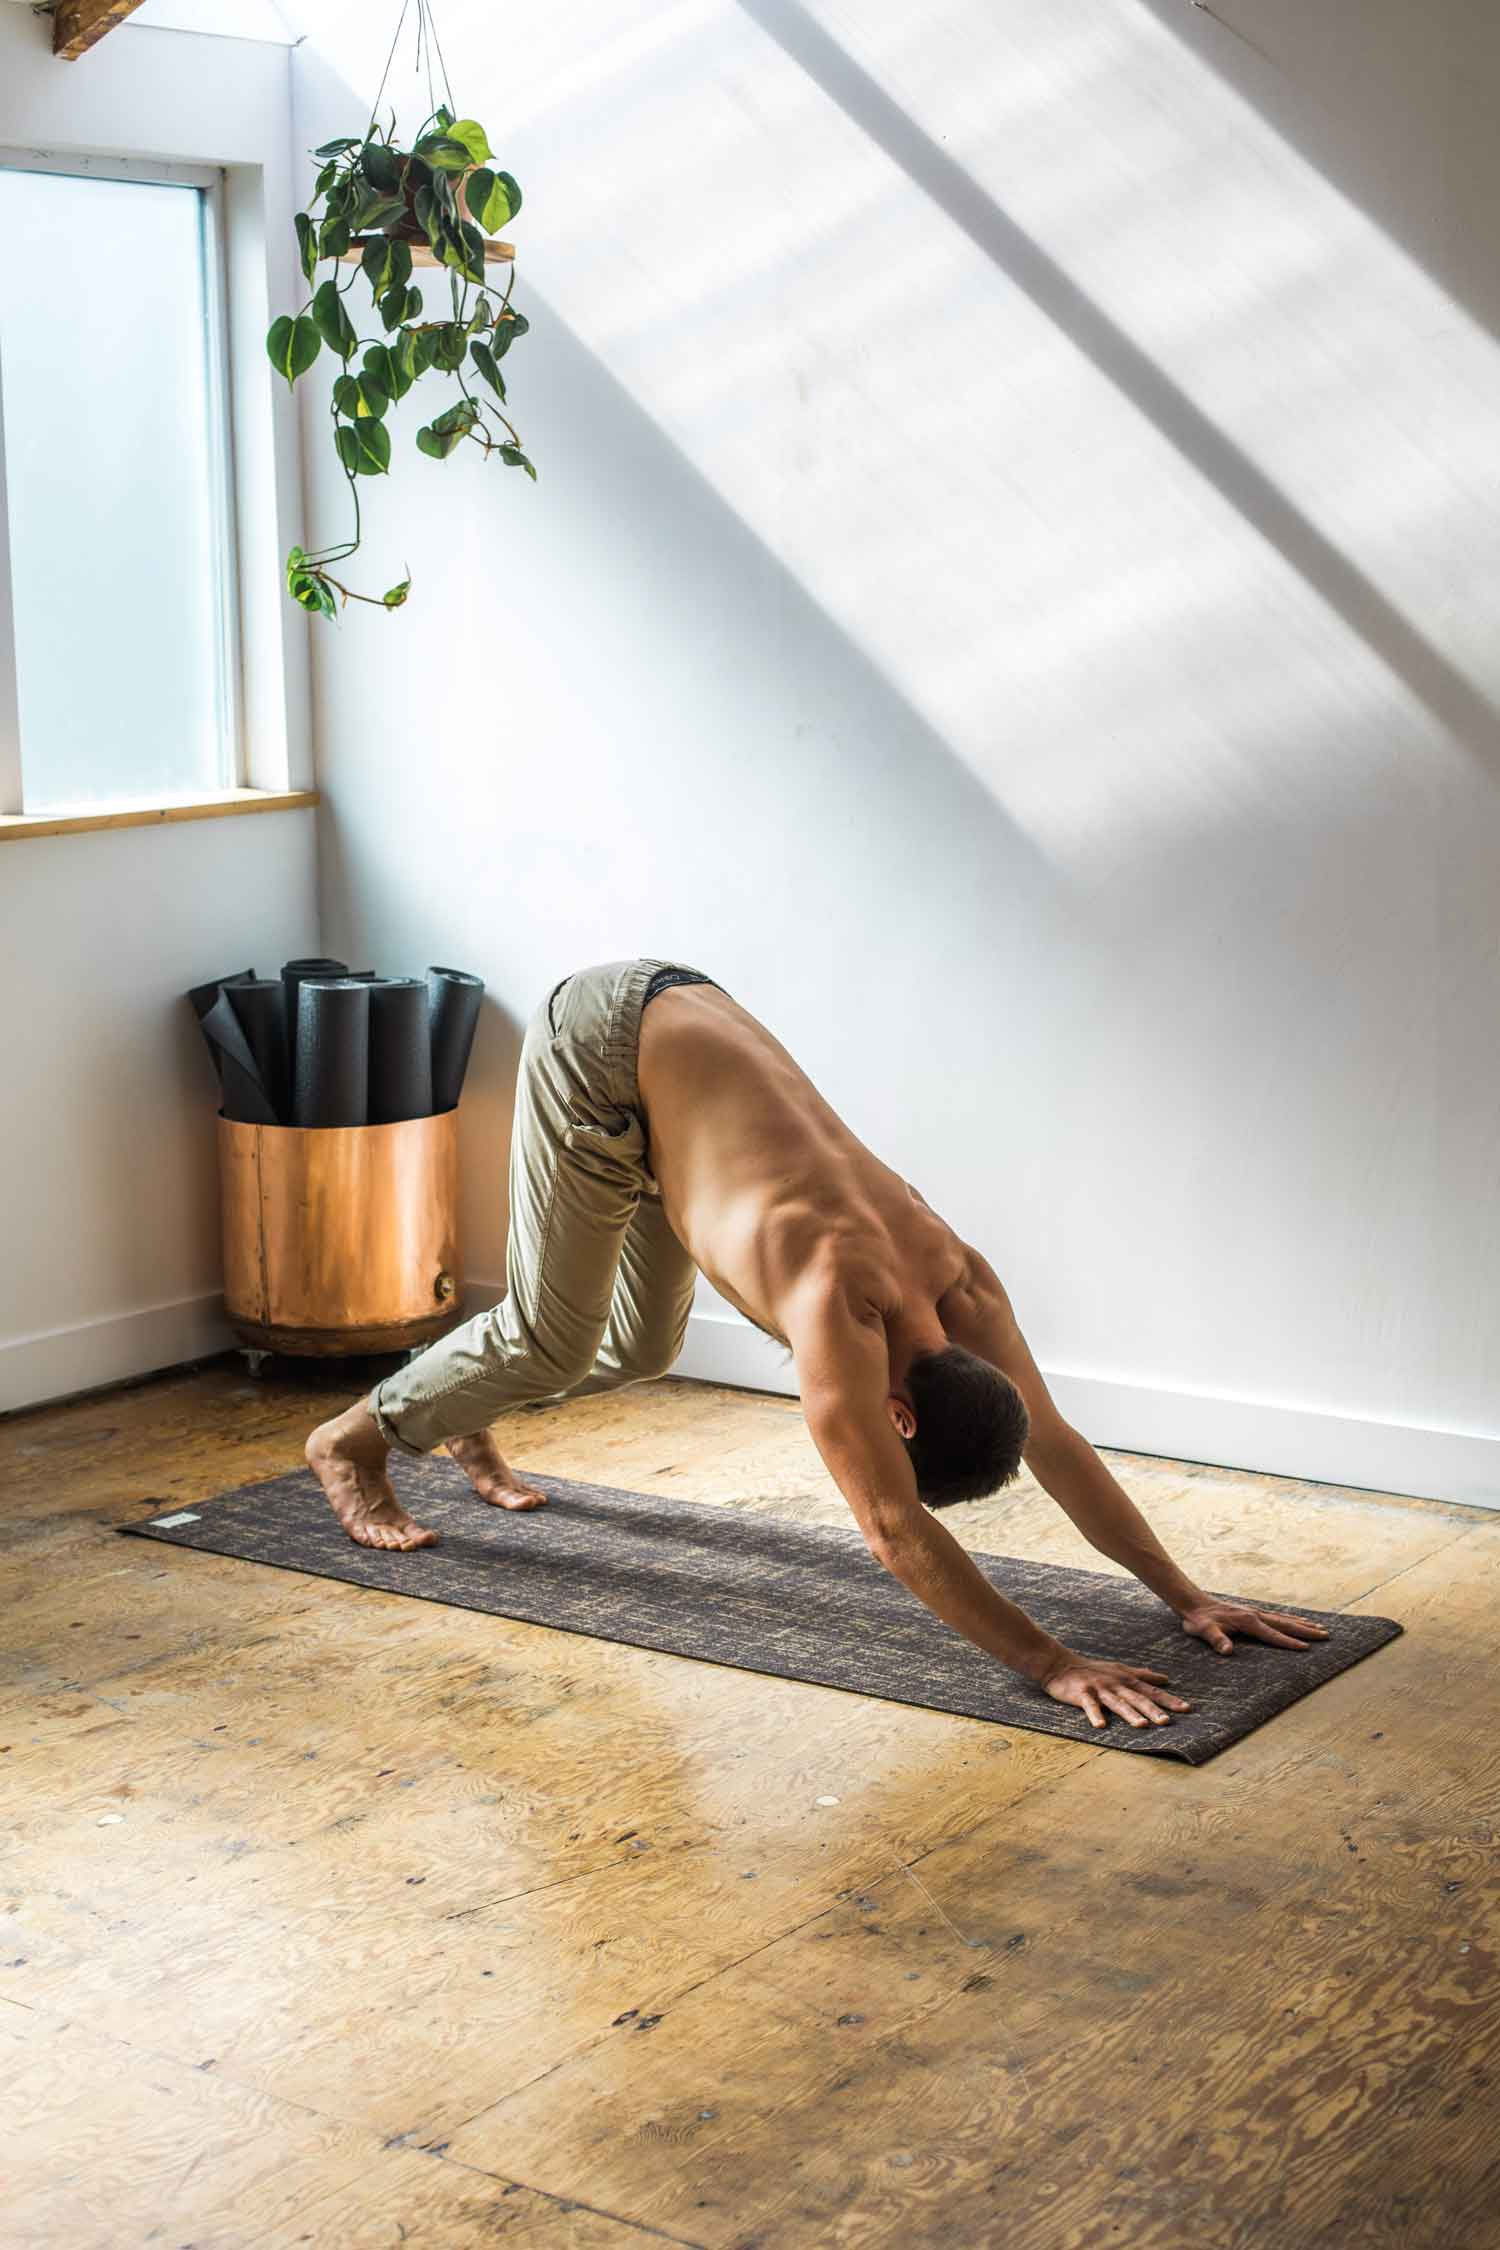 Man doing downward dog in a yoga studio